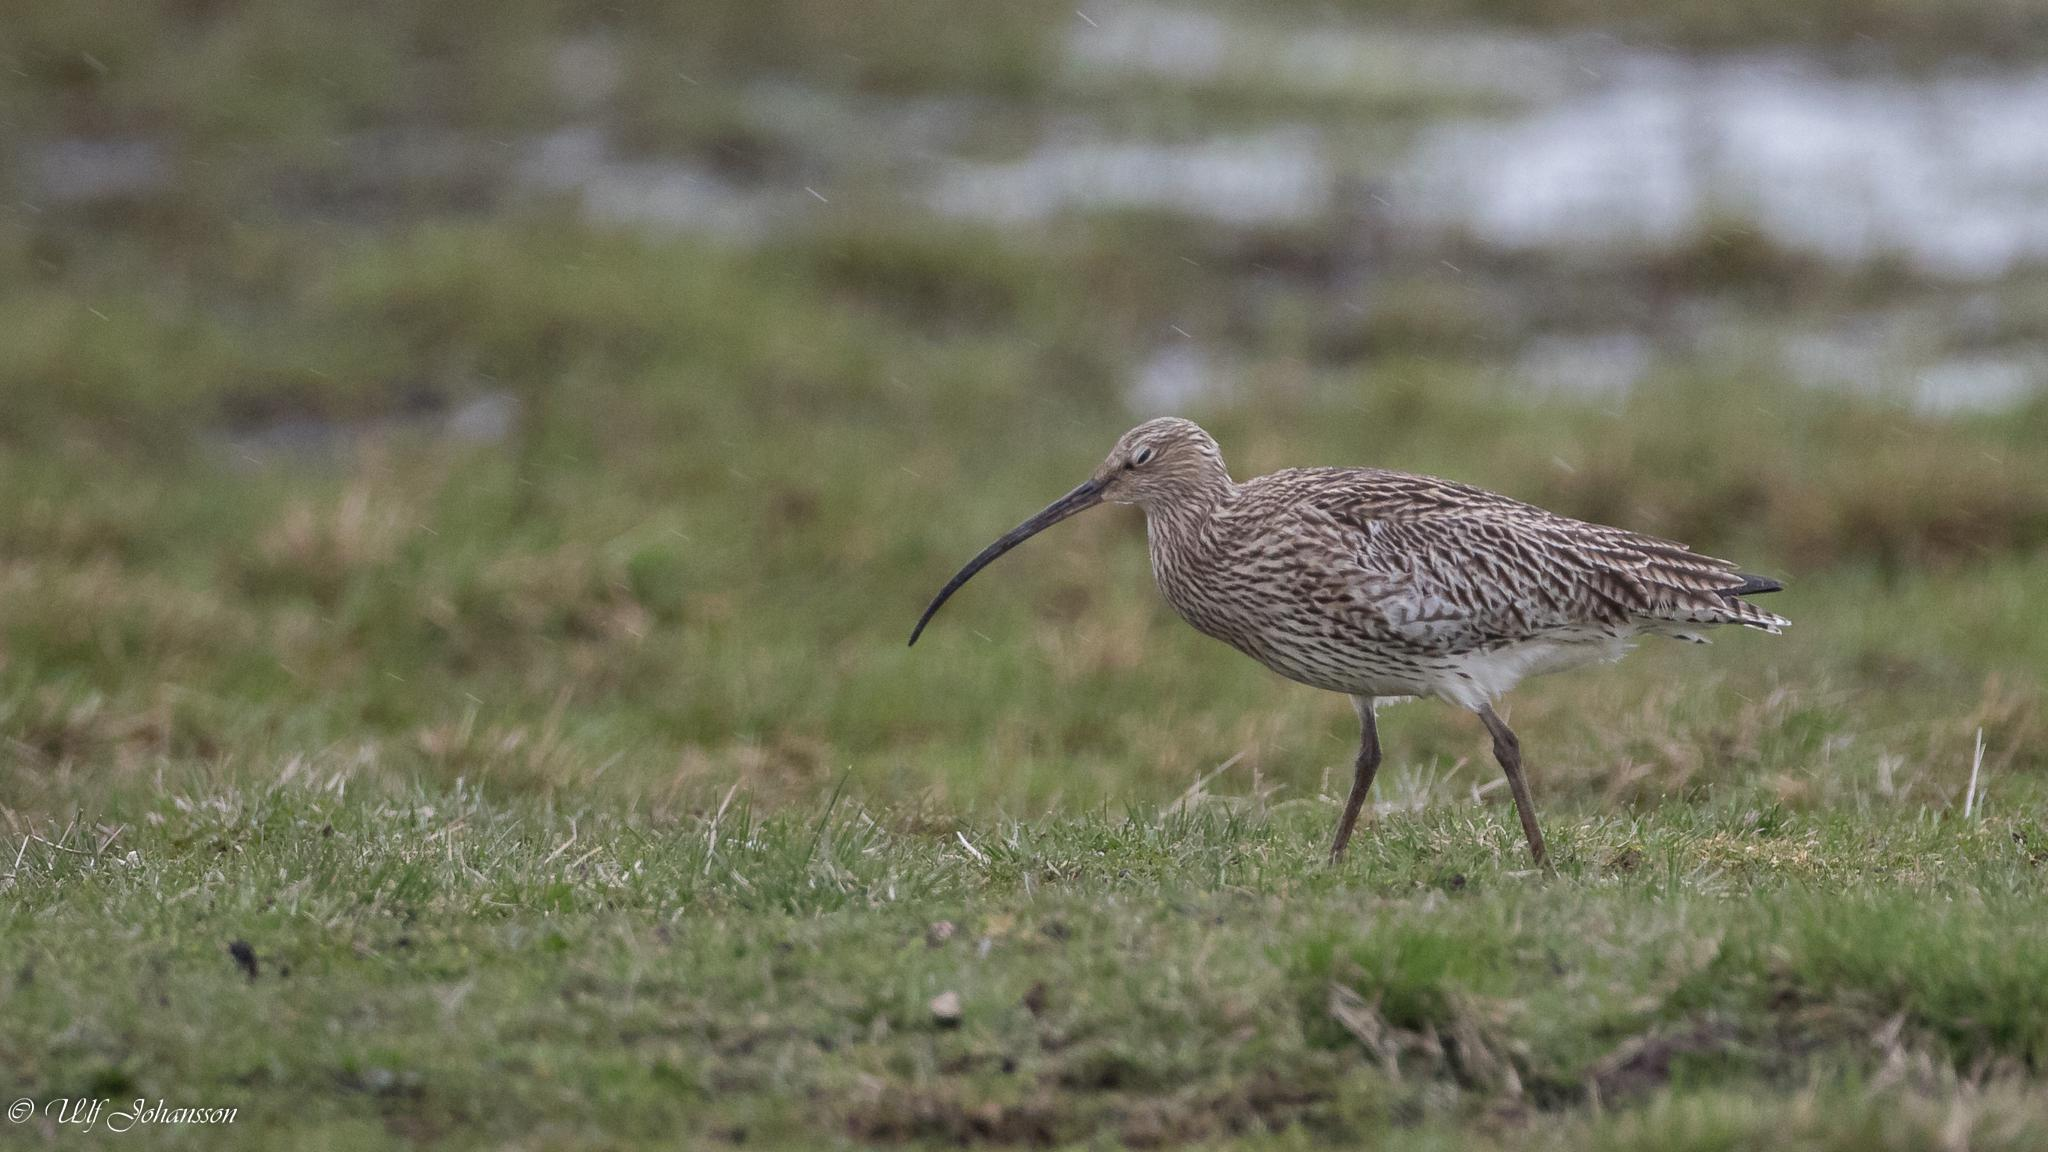 Eurasian curlew bad weather by ulf.johansson.7505